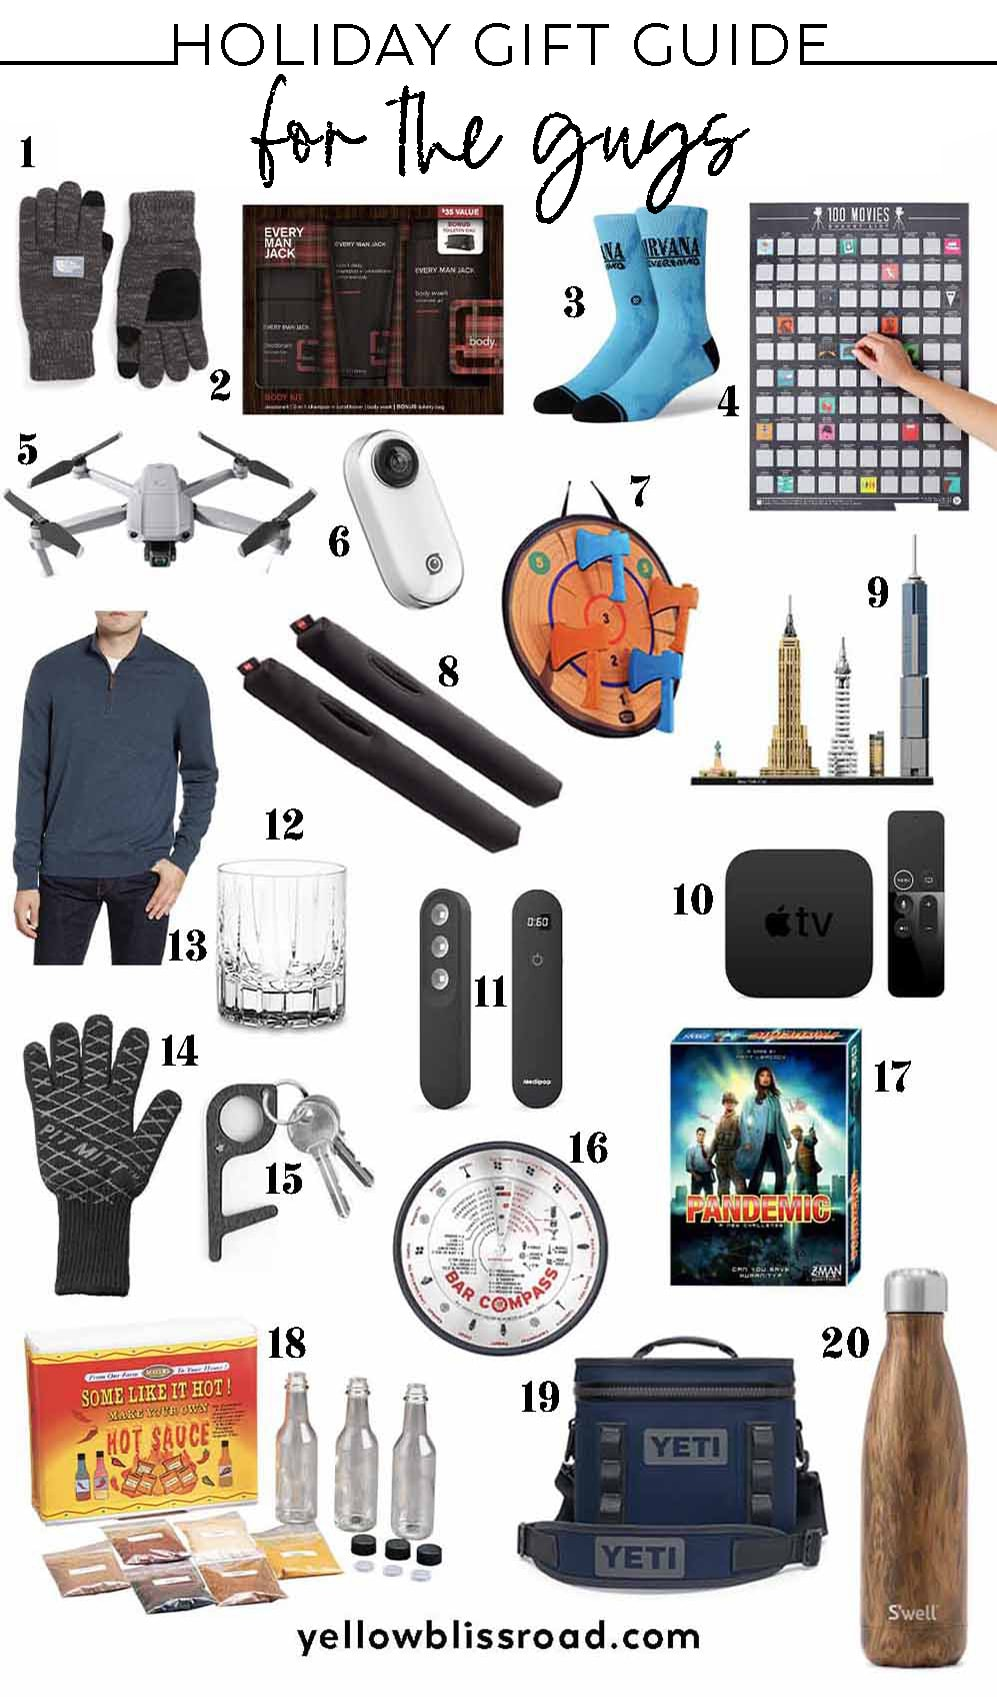 collage of holiday gift ideas for guys